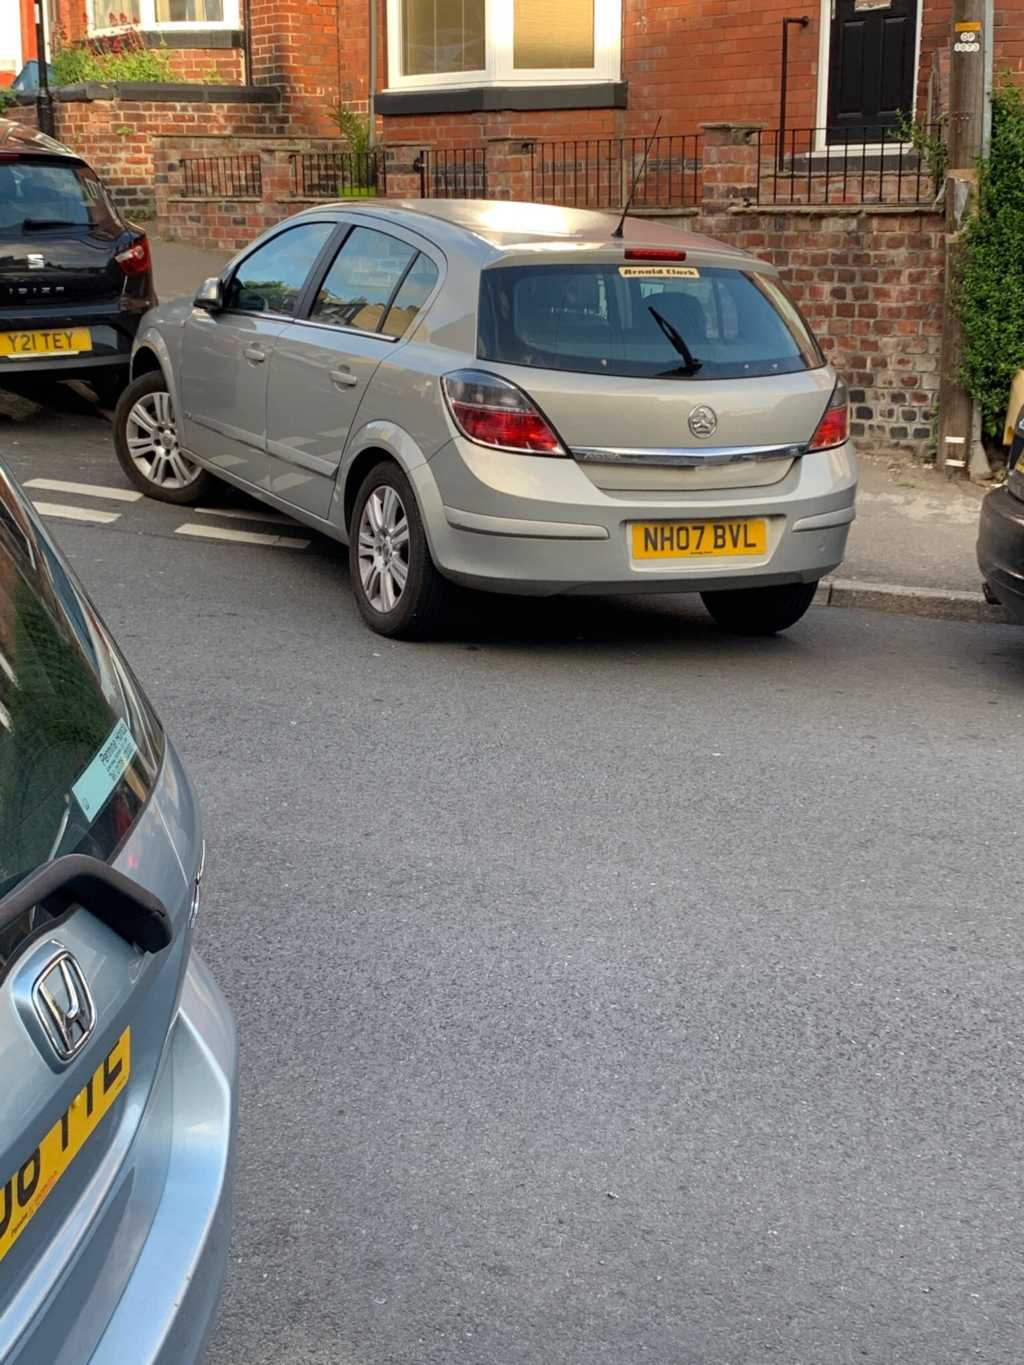 NH07 BVL displaying Inconsiderate Parking